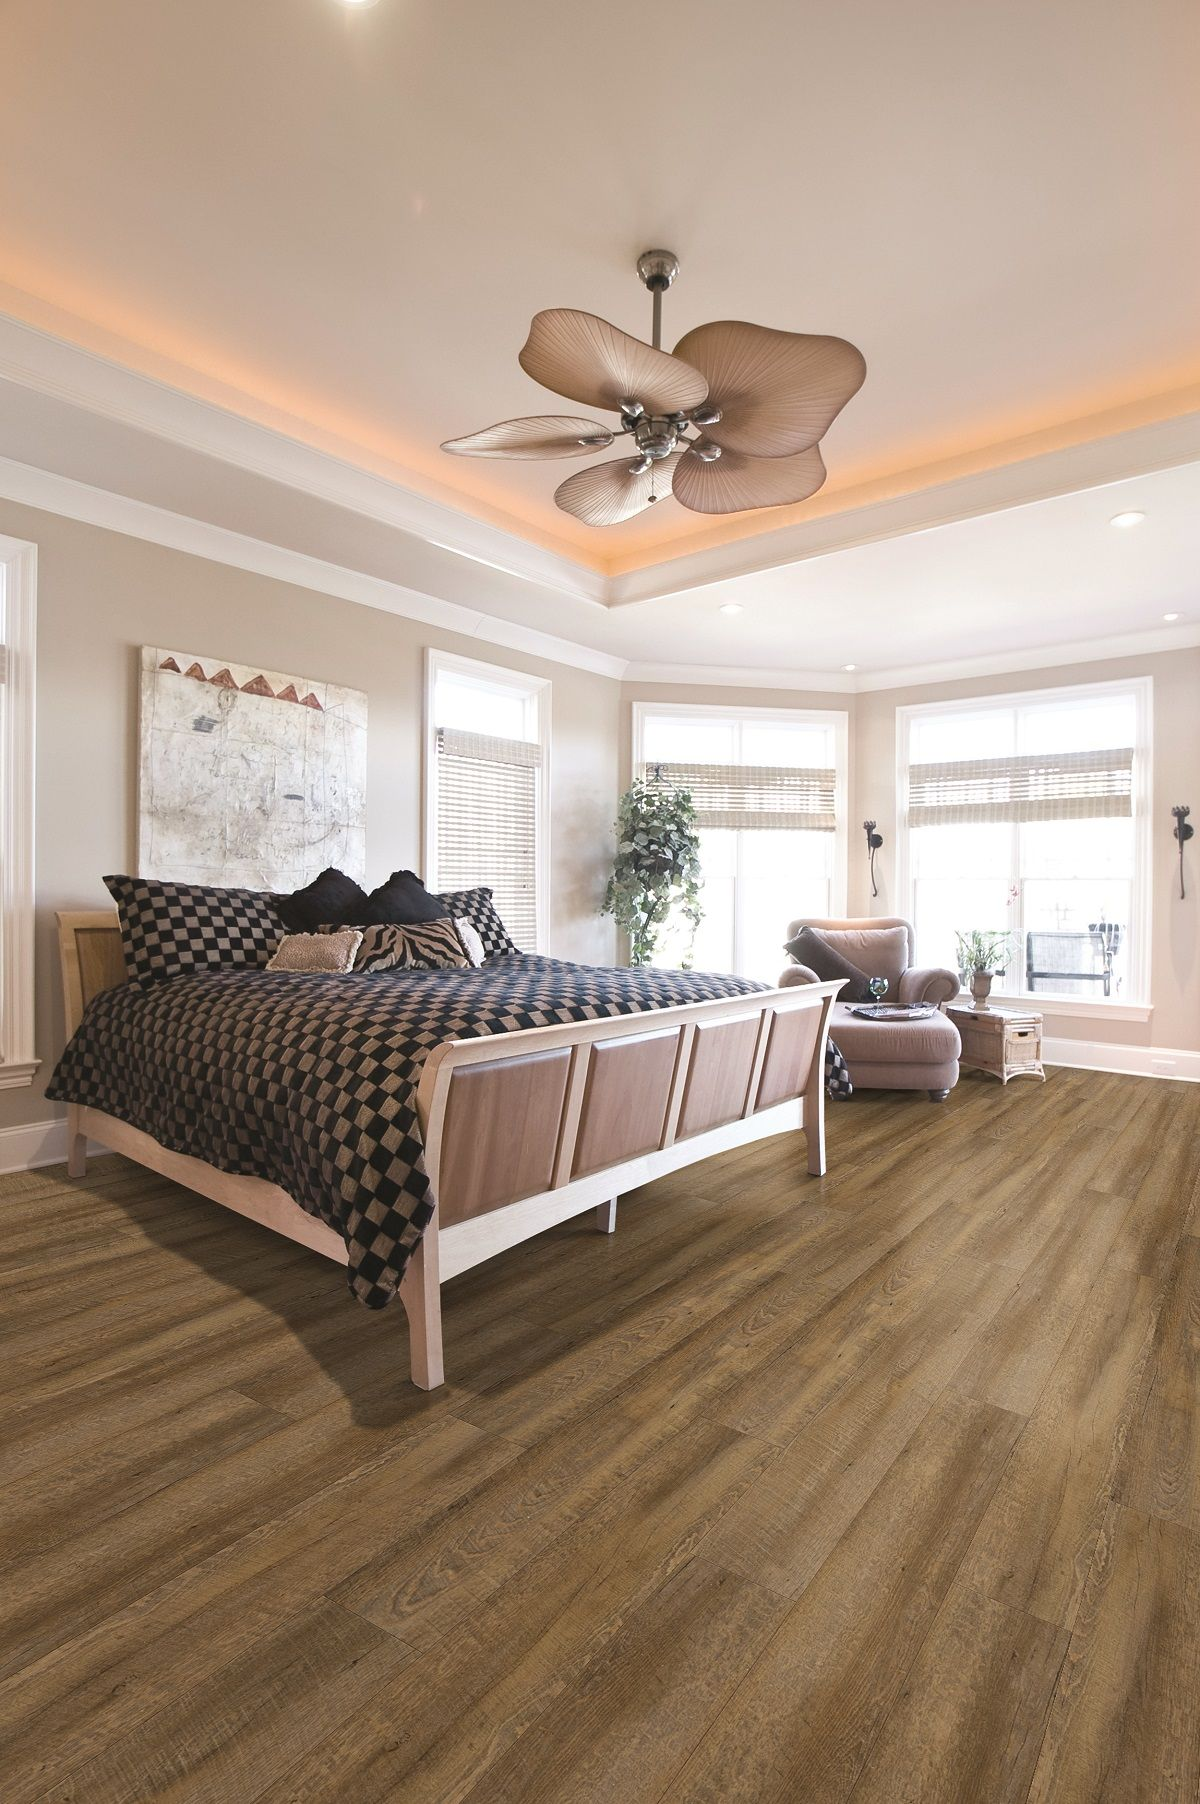 Find The Best And Most Durable Flooring Materials When You Try Waterproof Laminate For Your Kitchen Bathroom Bat